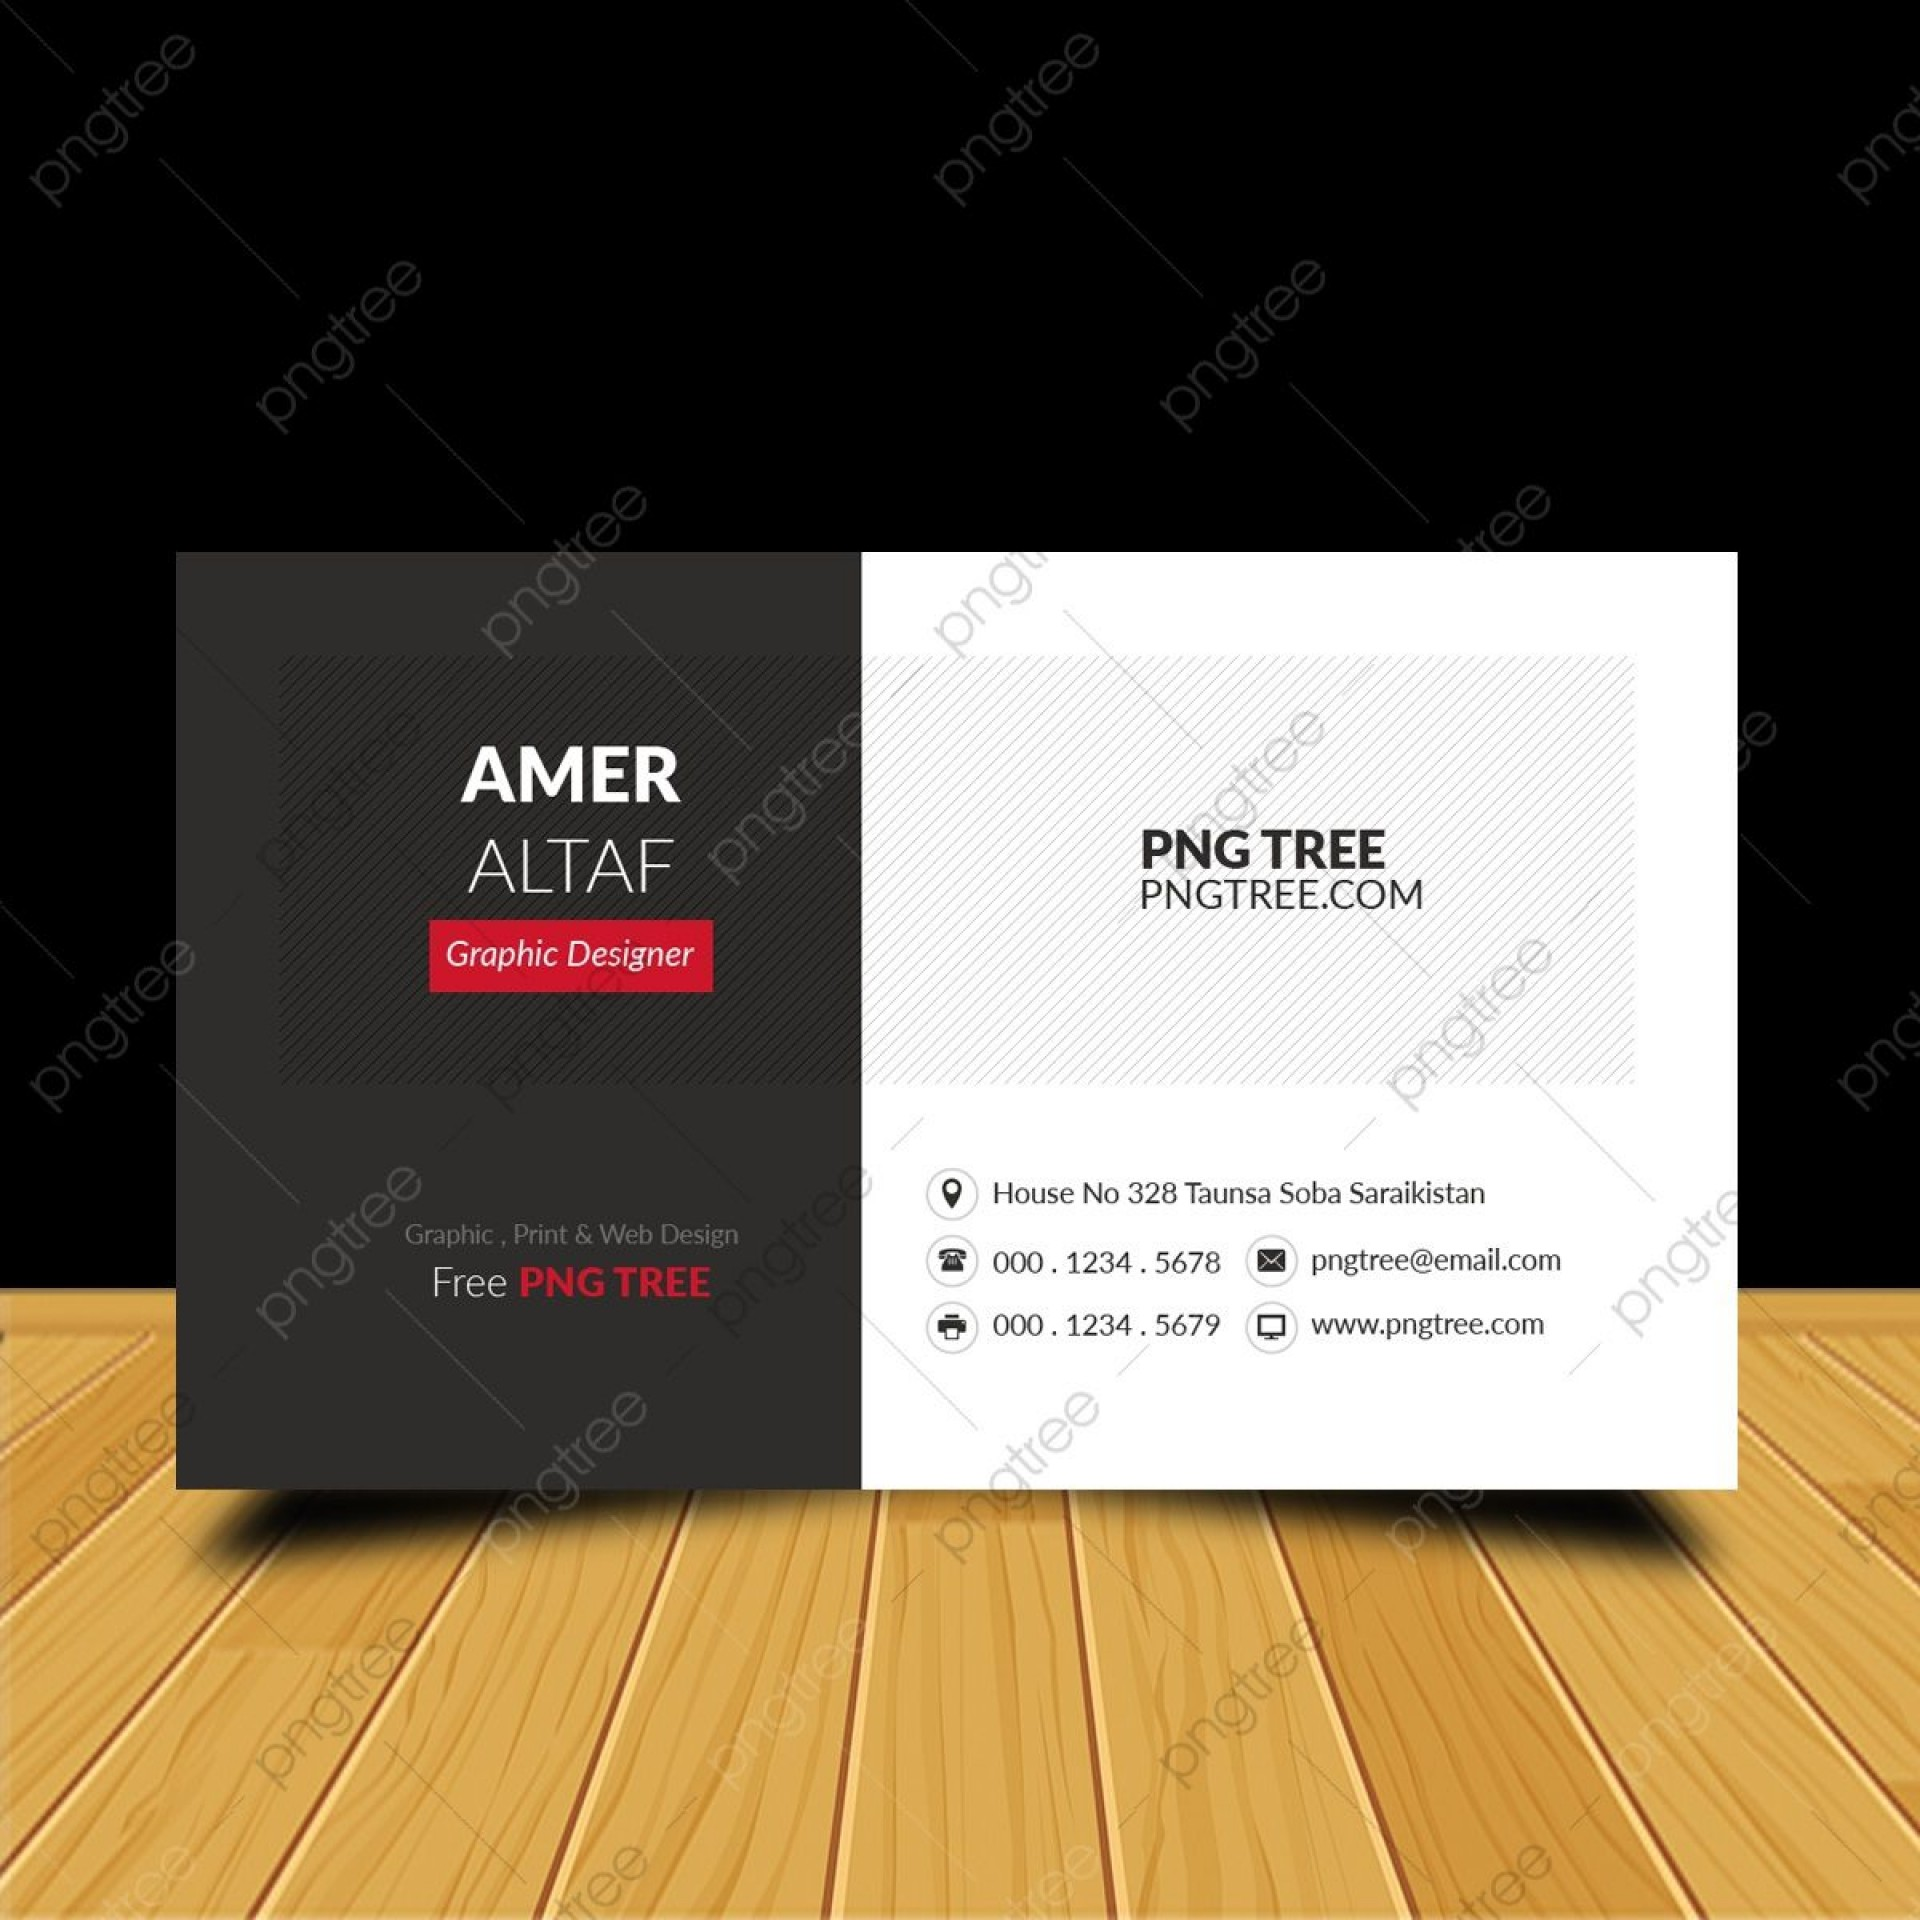 004 Imposing Simple Visiting Card Design Psd Sample  Minimalist Busines Template Free File Download In Photoshop1920